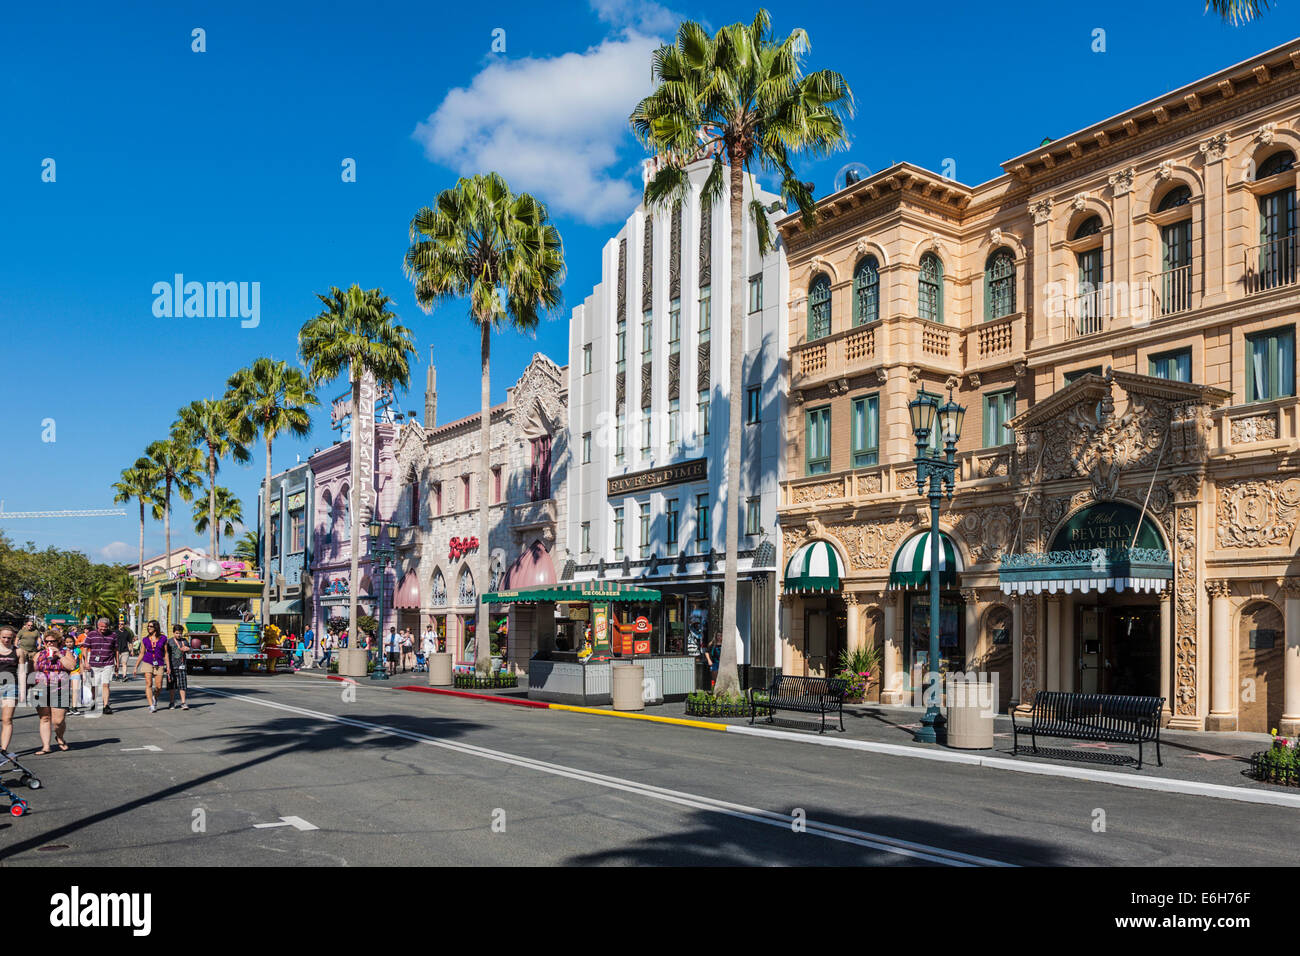 Tourists walk along Rodeo Drive in the Hollywood area of Universal Studios theme park in Orlando, Florida - Stock Image